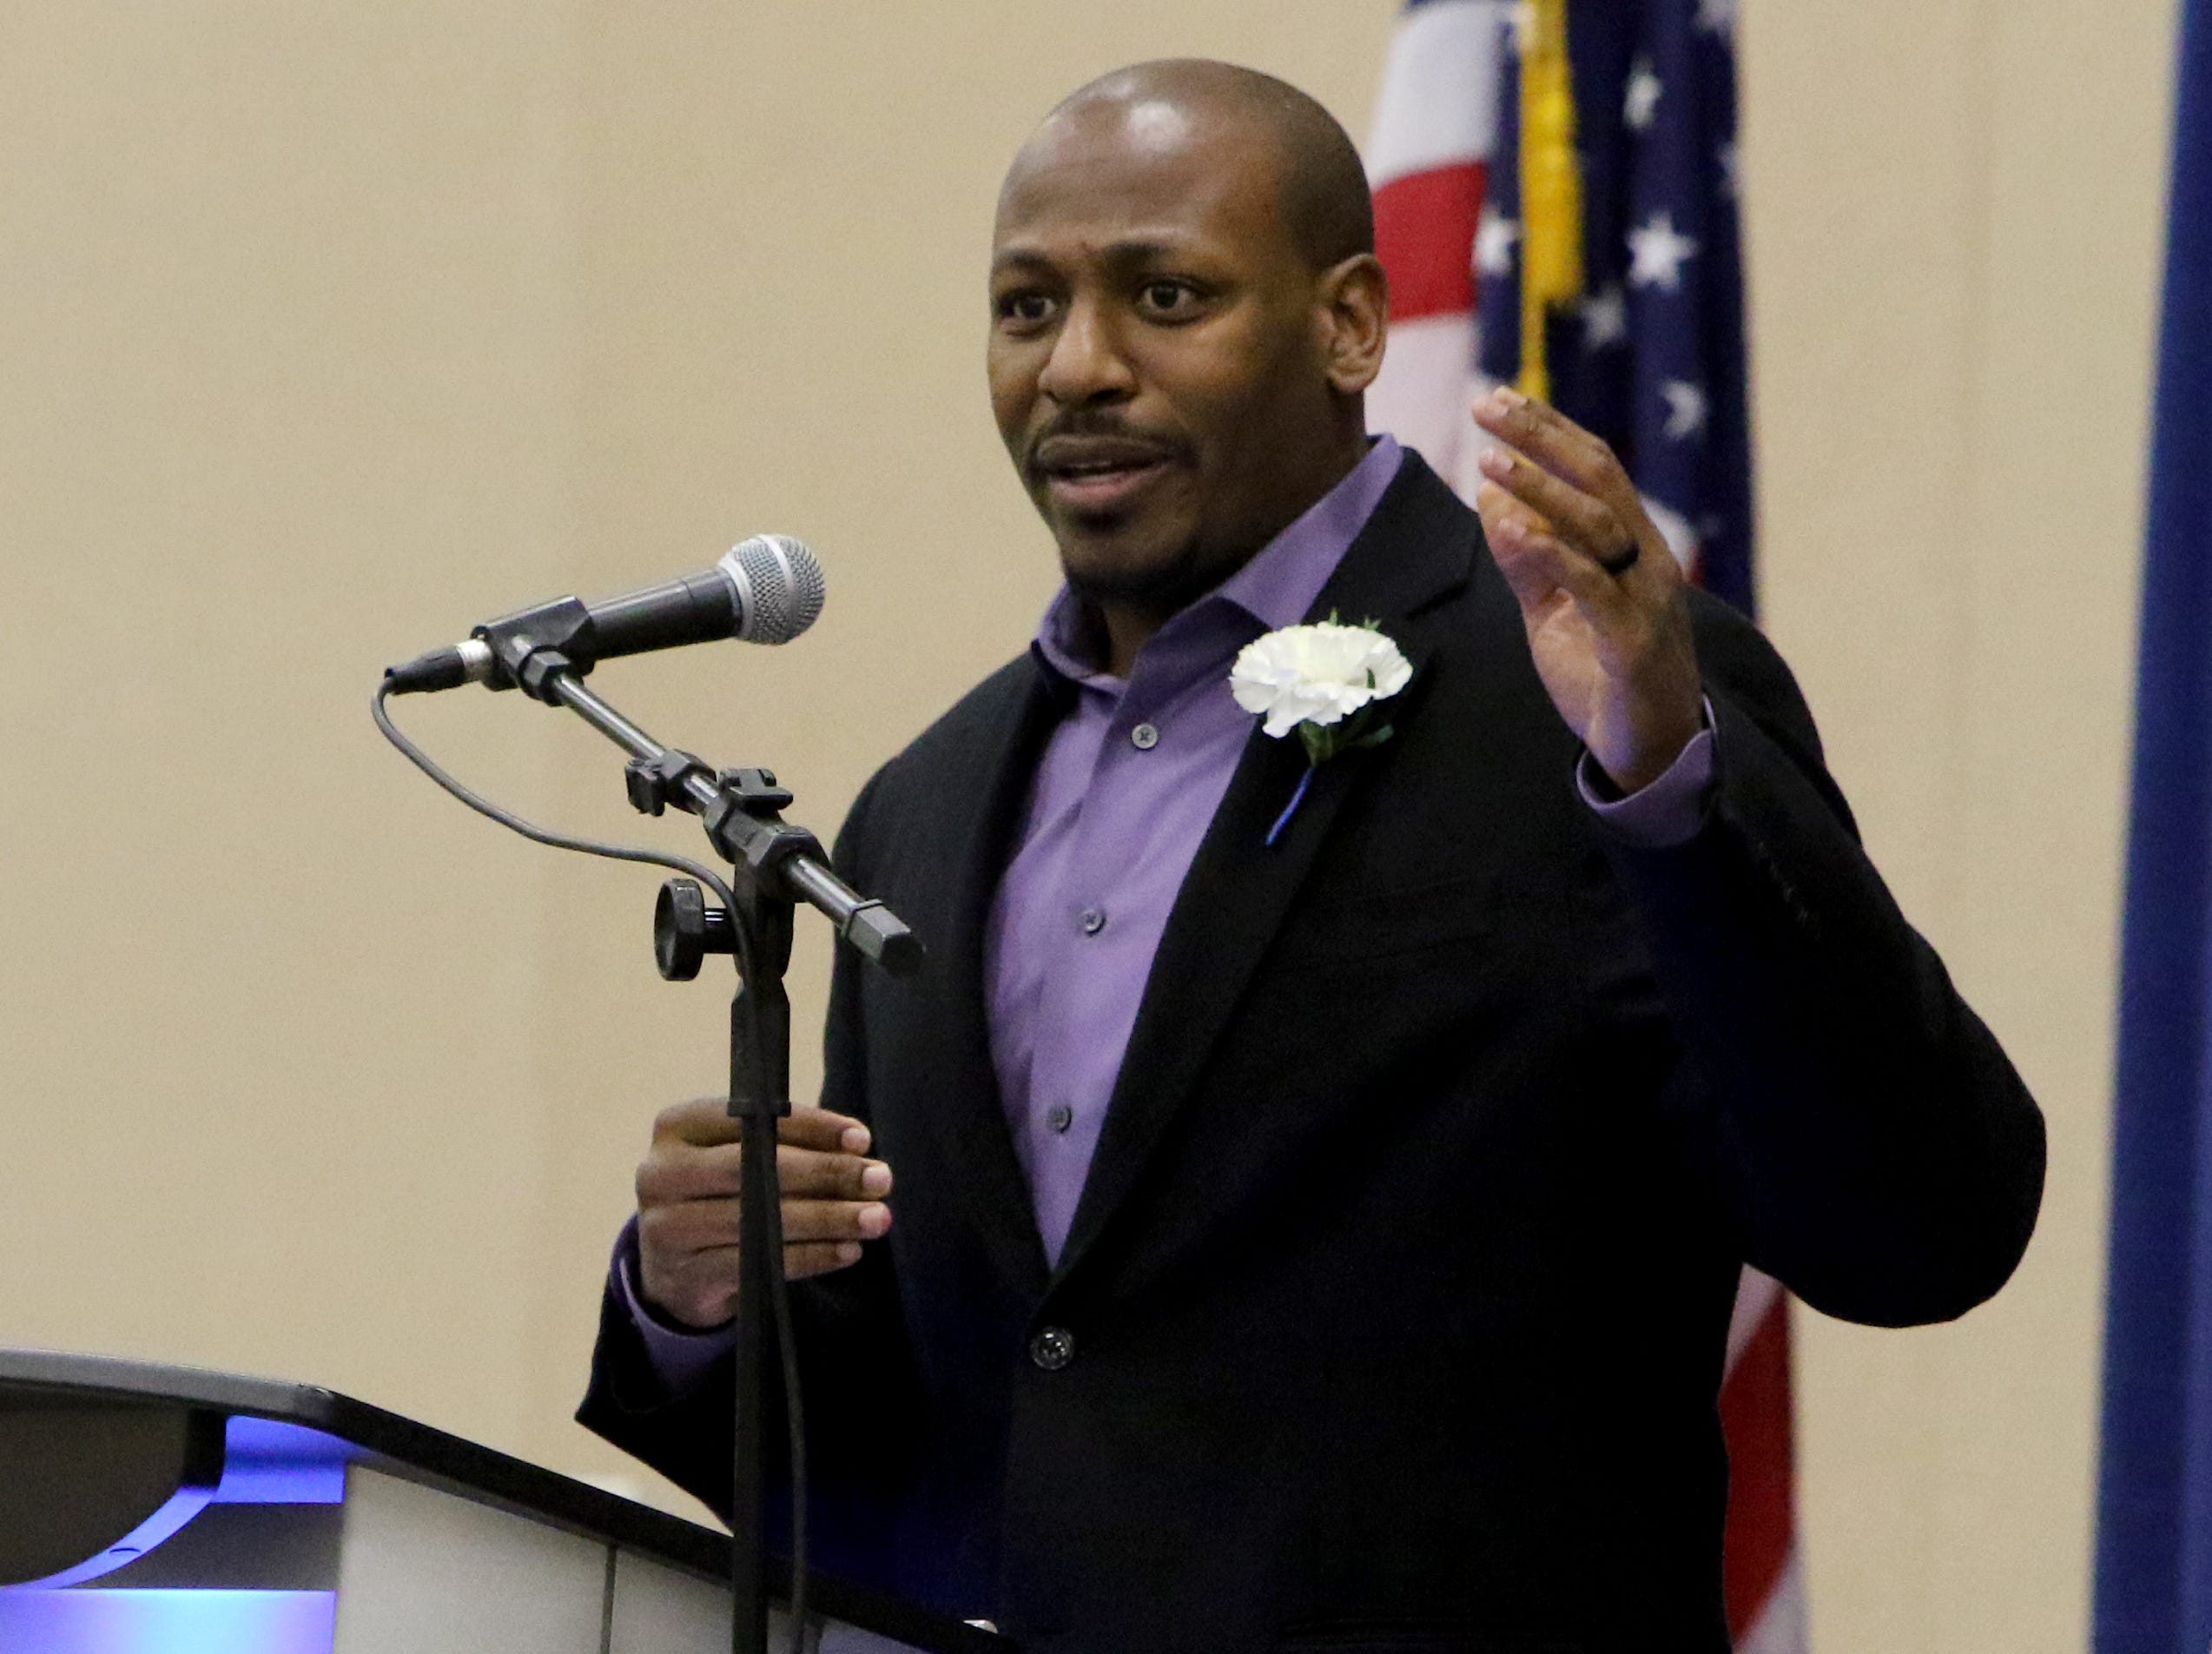 Jonathan Evans gives the meditation message at the Dr. Martin Luther King, Jr. Scholarship and Prayer Breakfast Saturday, Jan. 19, 2019, at the Multi-Purpose Events Center.